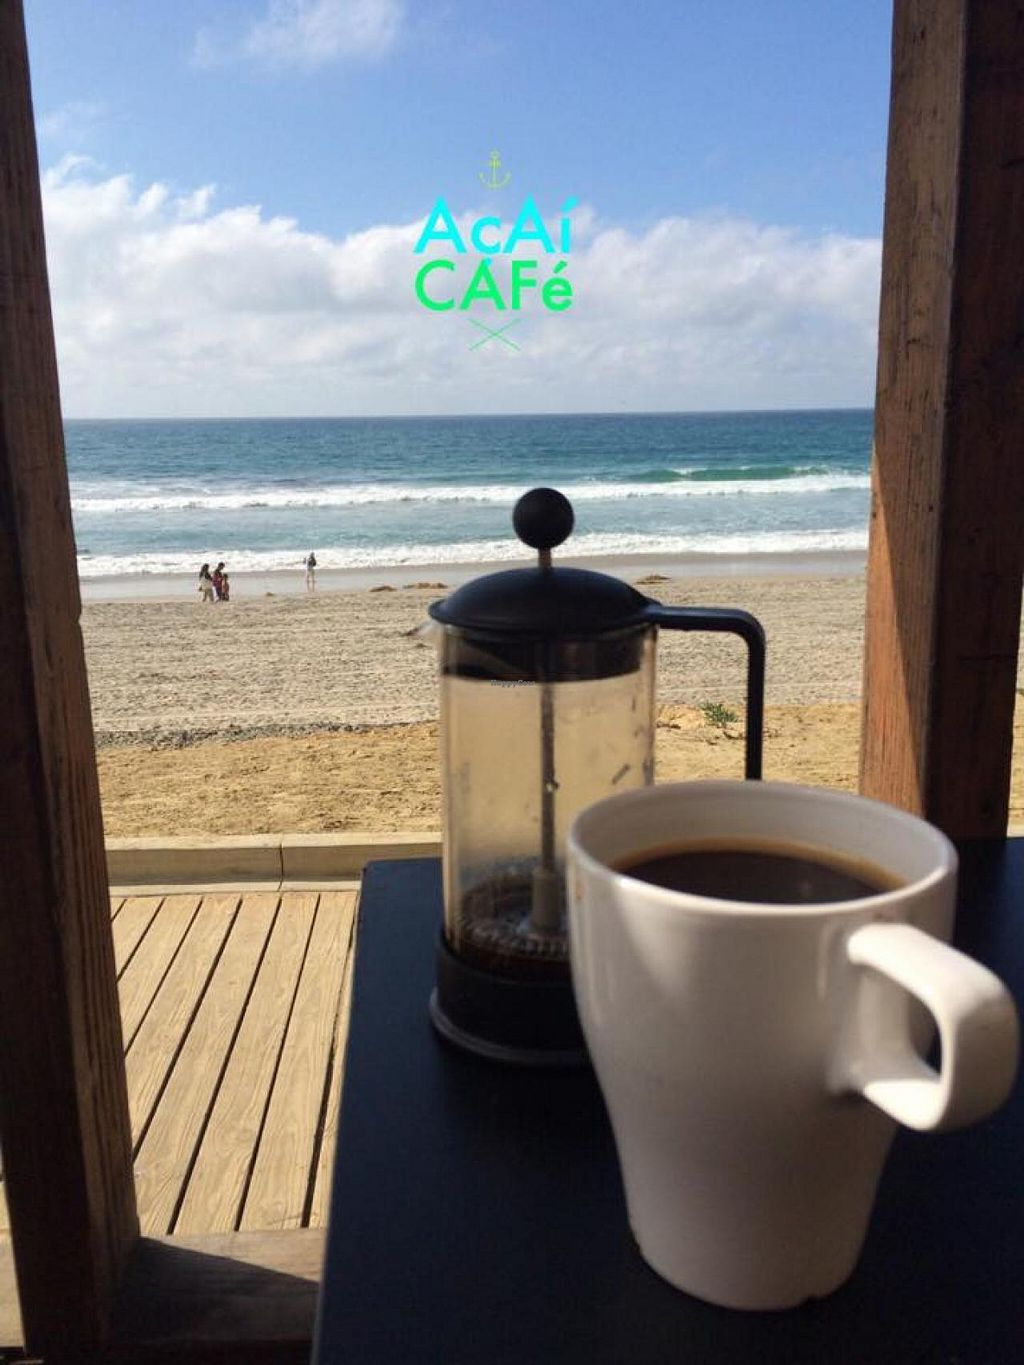 """Photo of Acai Cafe TJ  by <a href=""""/members/profile/illbethewind"""">illbethewind</a> <br/>Organic fair trade French Press Coffee.  <br/> December 10, 2014  - <a href='/contact/abuse/image/53705/87667'>Report</a>"""